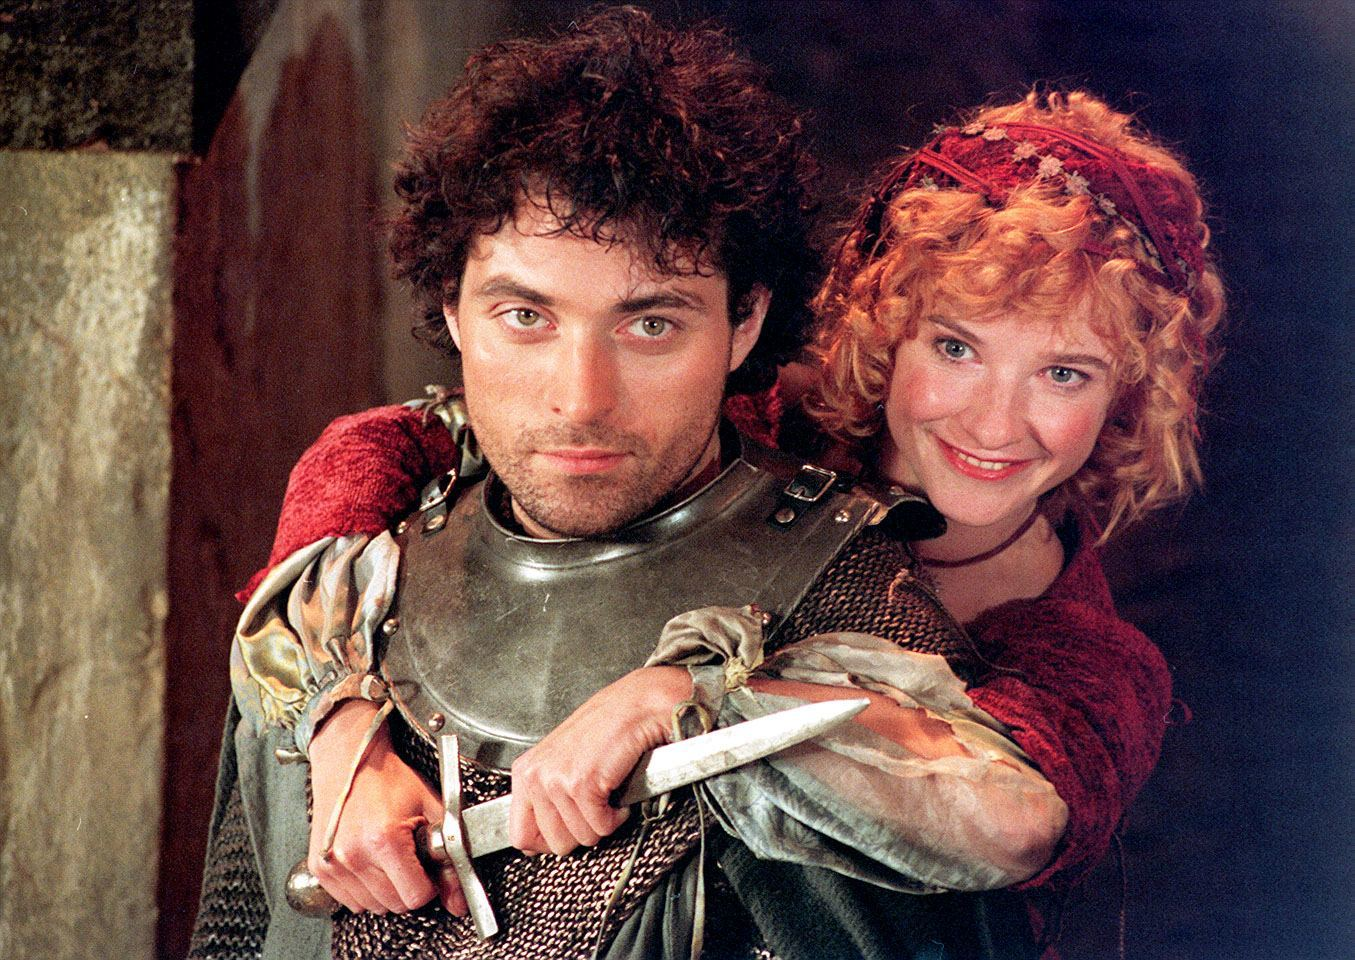 Rufus Sewell as Hotspur and Jane Horrocks as Doll Tearshet  at a London photocall to for the BBC's new adaptation of Shakespeare's Henry IV. The play, which has been adatpted for TV by John Caird, wil be shown on BBC 2 at a date to be announced this autumn. 09/08/1995